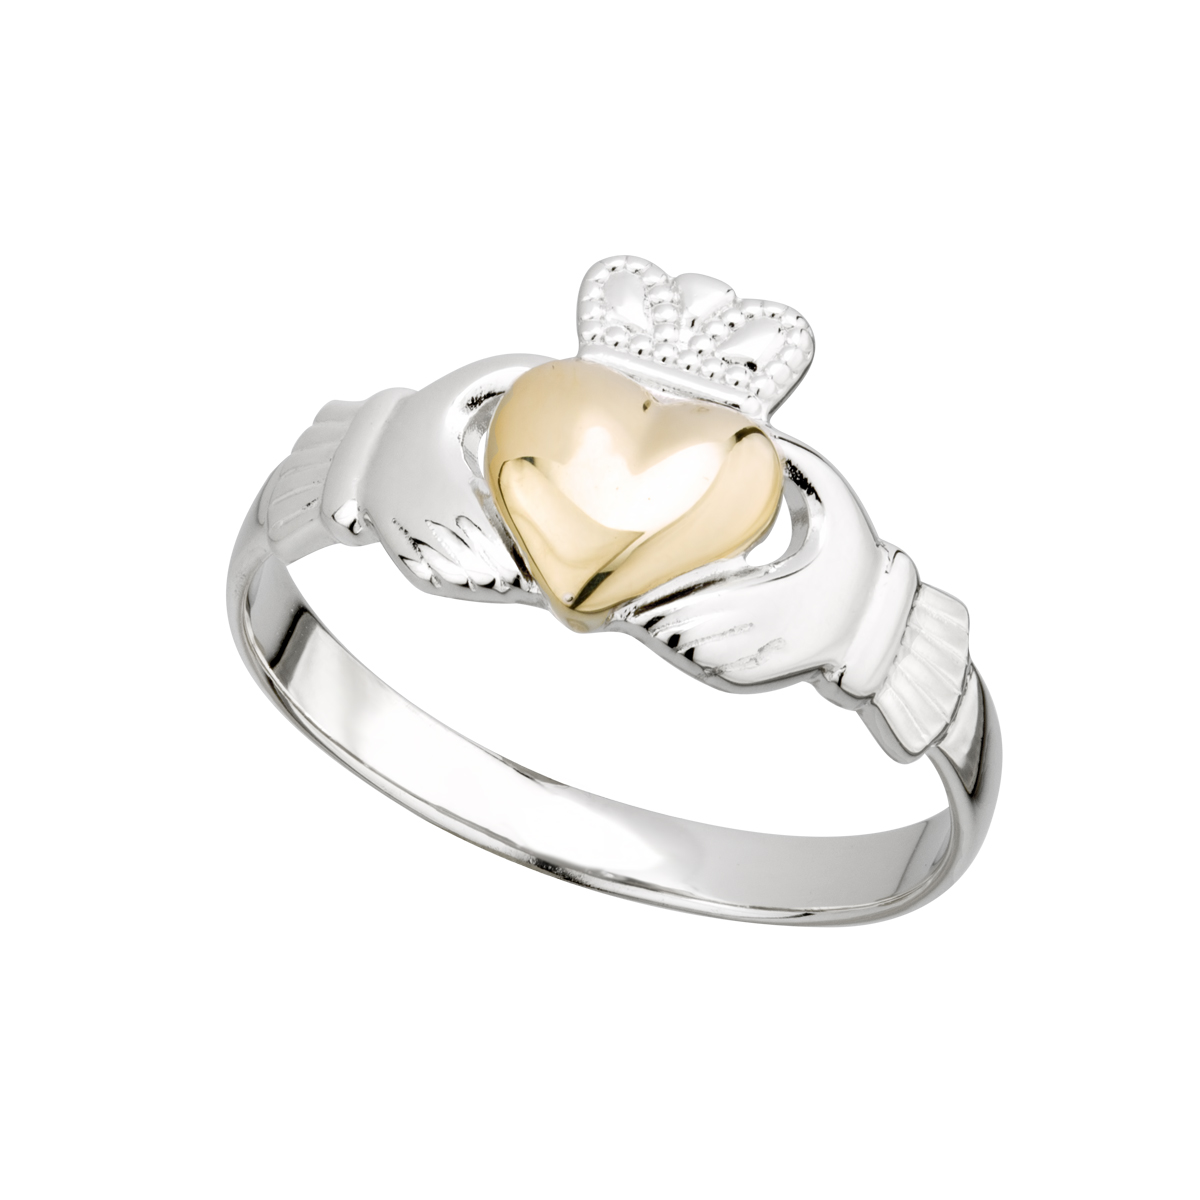 Solvar Silver and Gold Claddagh Ring